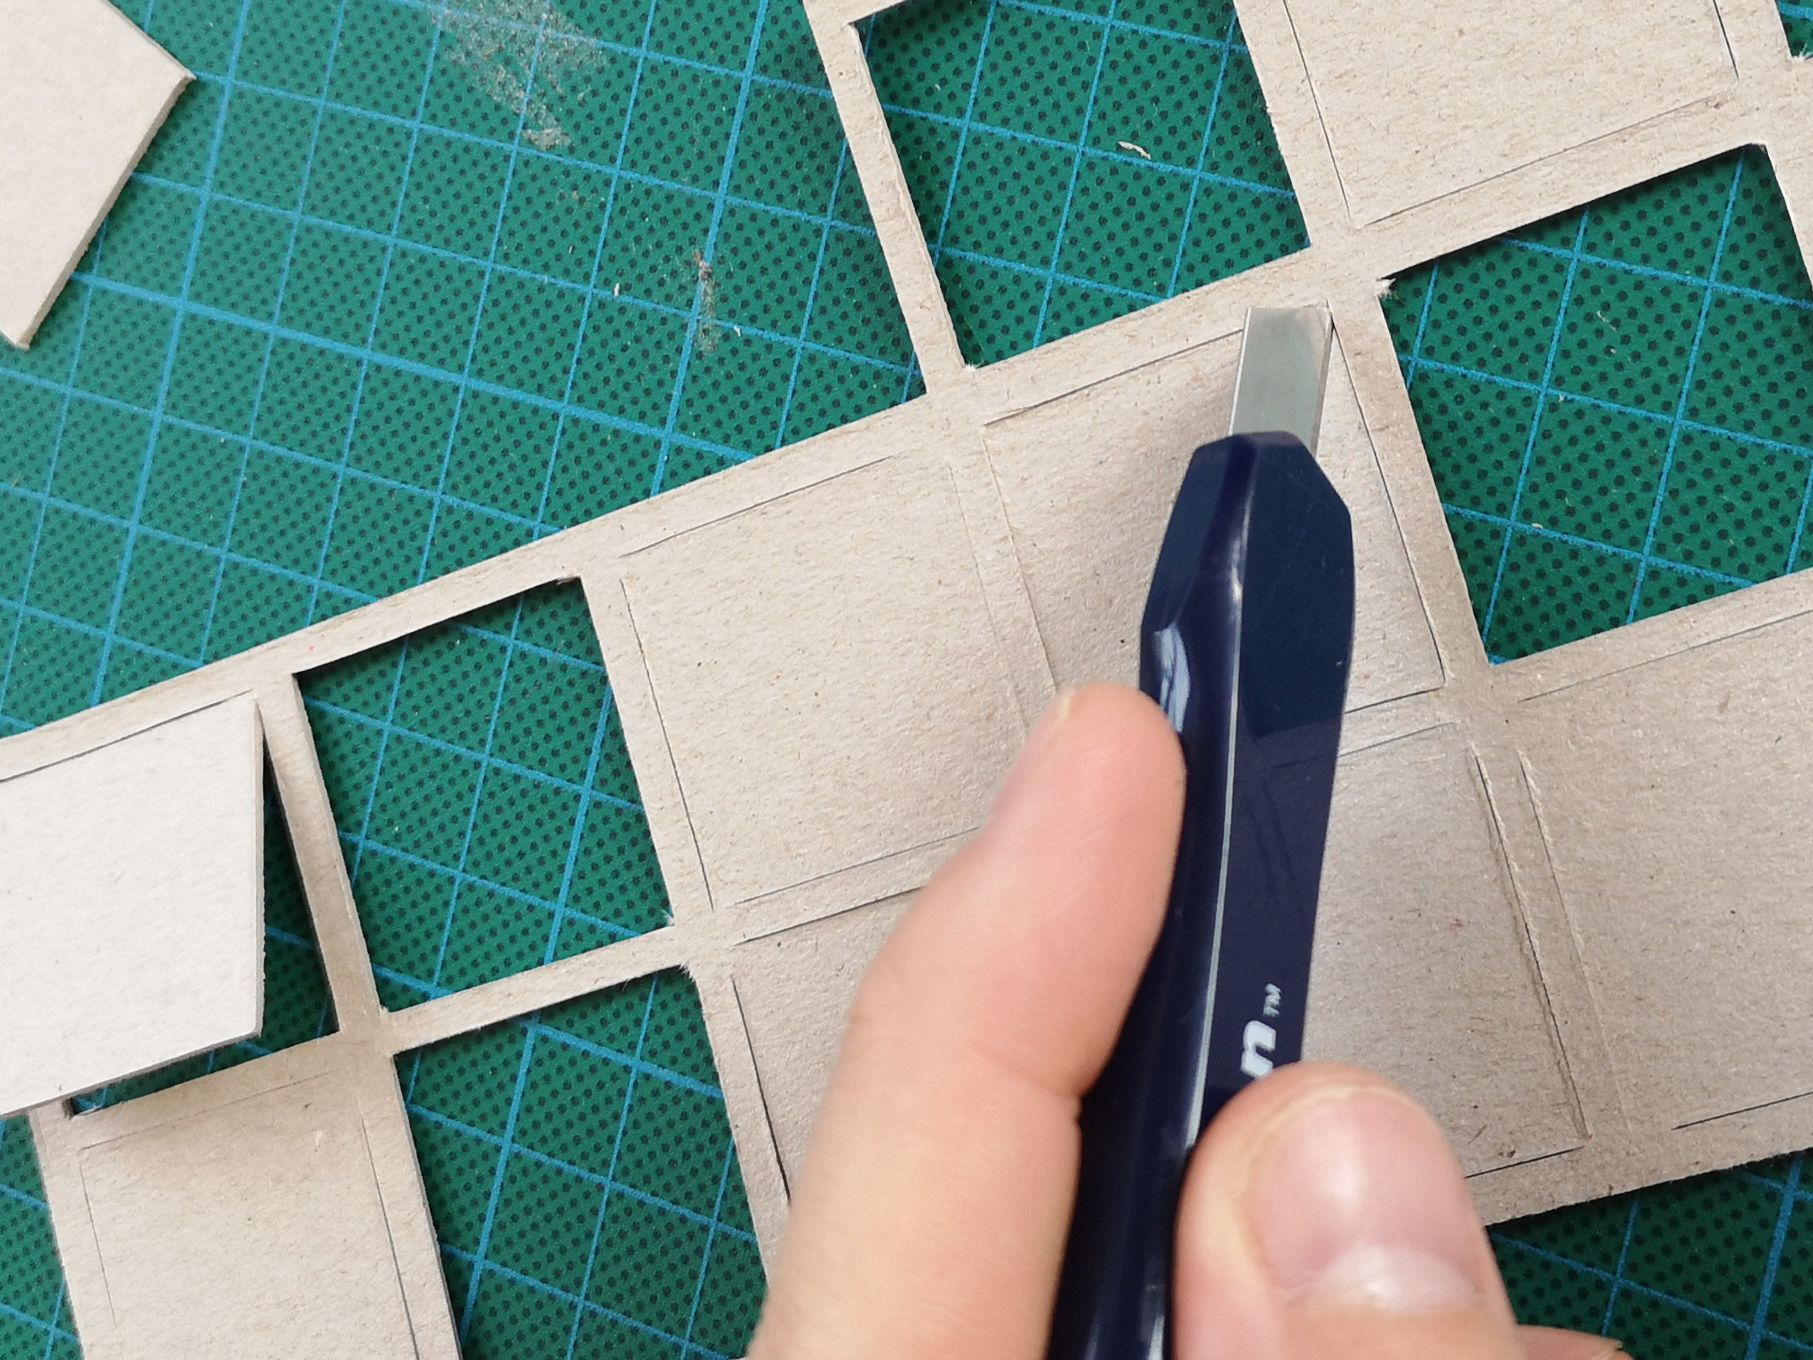 A hand is shown using a craft knife and cutting matt to score out squares from some brown cardboard